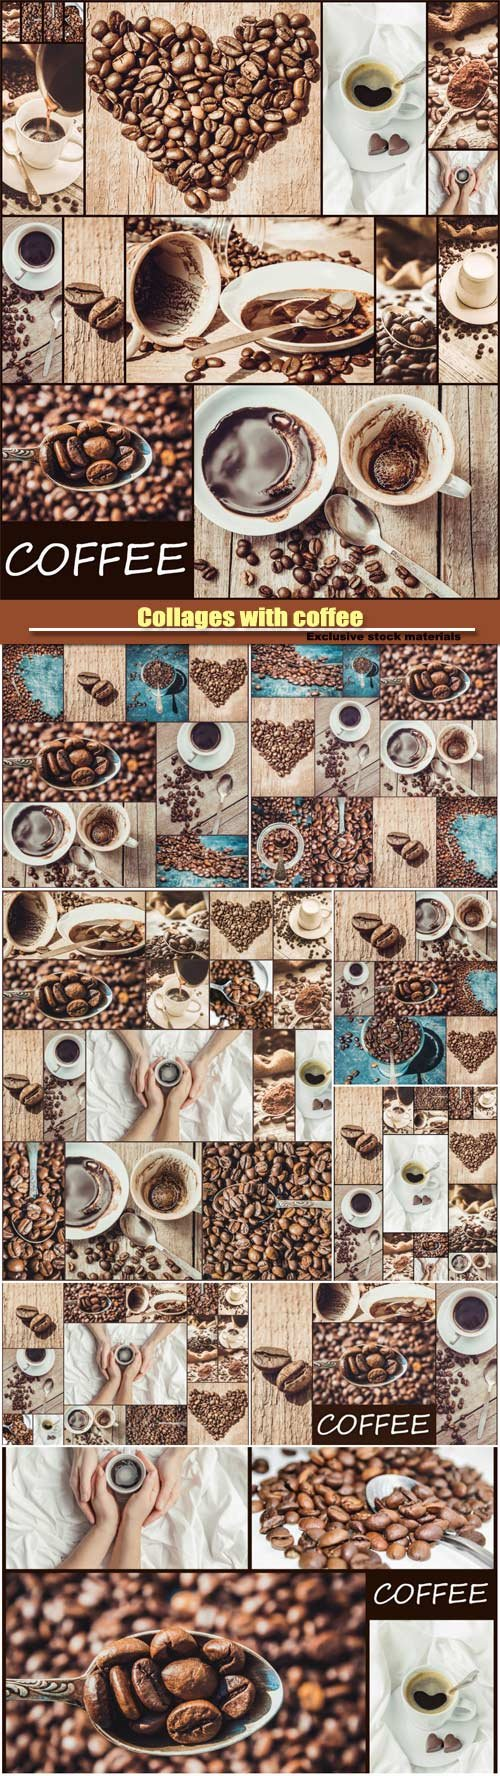 Collages with coffee